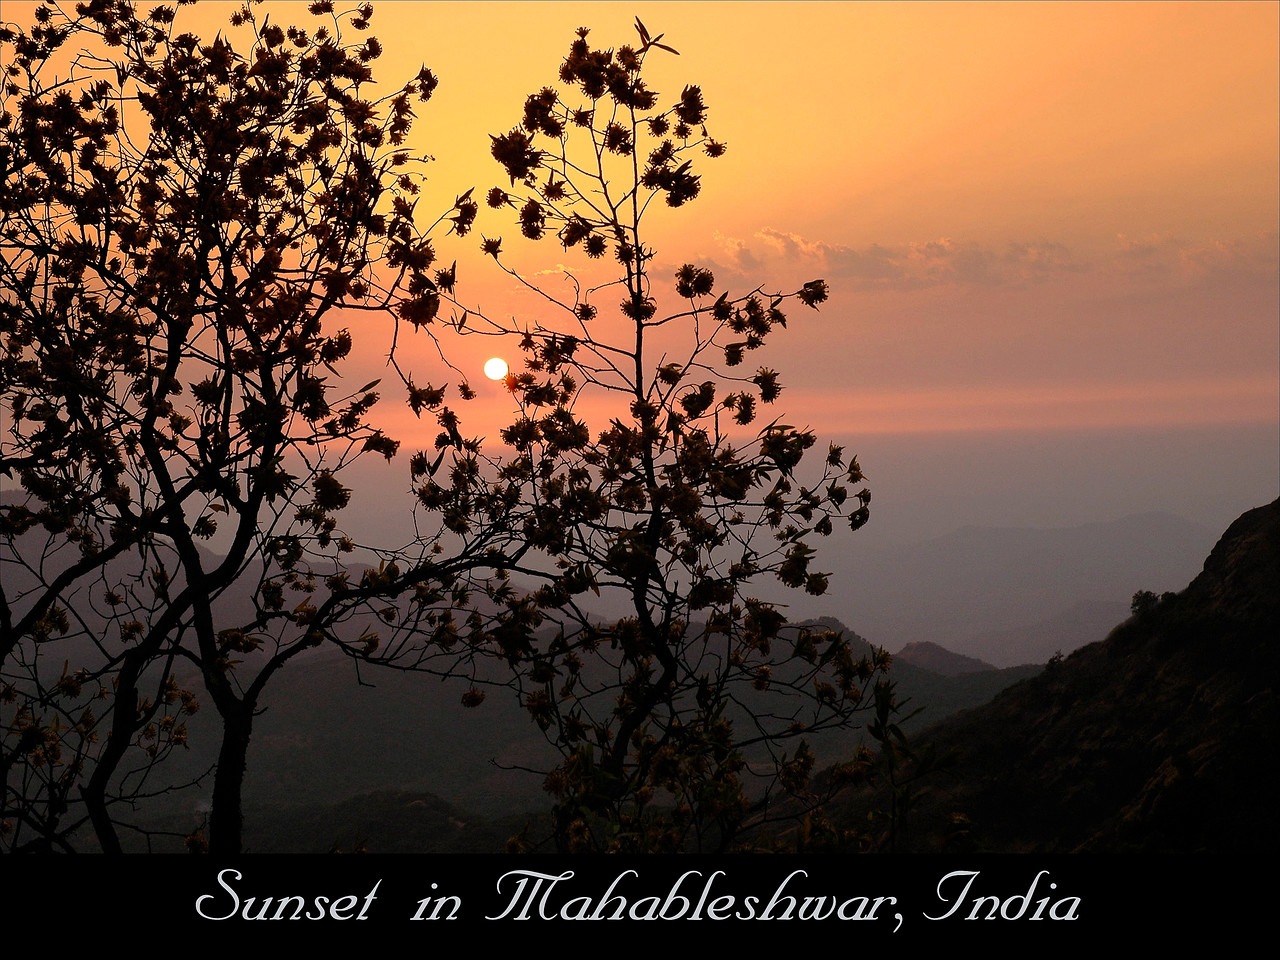 Sunset in Mahableshwar, Maharashtra, India.<br /> Mahableshwar, located in Satara district is a hill station located in the Western Ghats range with one of the few evergreen forests of the world. Located about 300 kms from Mumbai, Mahabaleshwar is a vast plateau measuring bound by valleys on all sides. It reaches a height of 1438 m (4710 ft) at its highest peak above sea level and the Sunset view is gorgeous.<br /> <br /> Today, Mahabaleshwar is a popular holiday resort and honeymoon spot, and an important pilgrimage site for Hindus. It is the site of Mahabaleshwar Temple. Many tourists visit nearby Panchgani. After the construction of a new highway, it is only a five-hour drive from Mumbai. Mahabaleshwar is also known for the honey and strawberries produced here.here one can visit strawberries farms to get real flavour of the fruit.It is said that the climate of Mahabaleshwar is ideal for strawberries and Malburries.[citation needed].